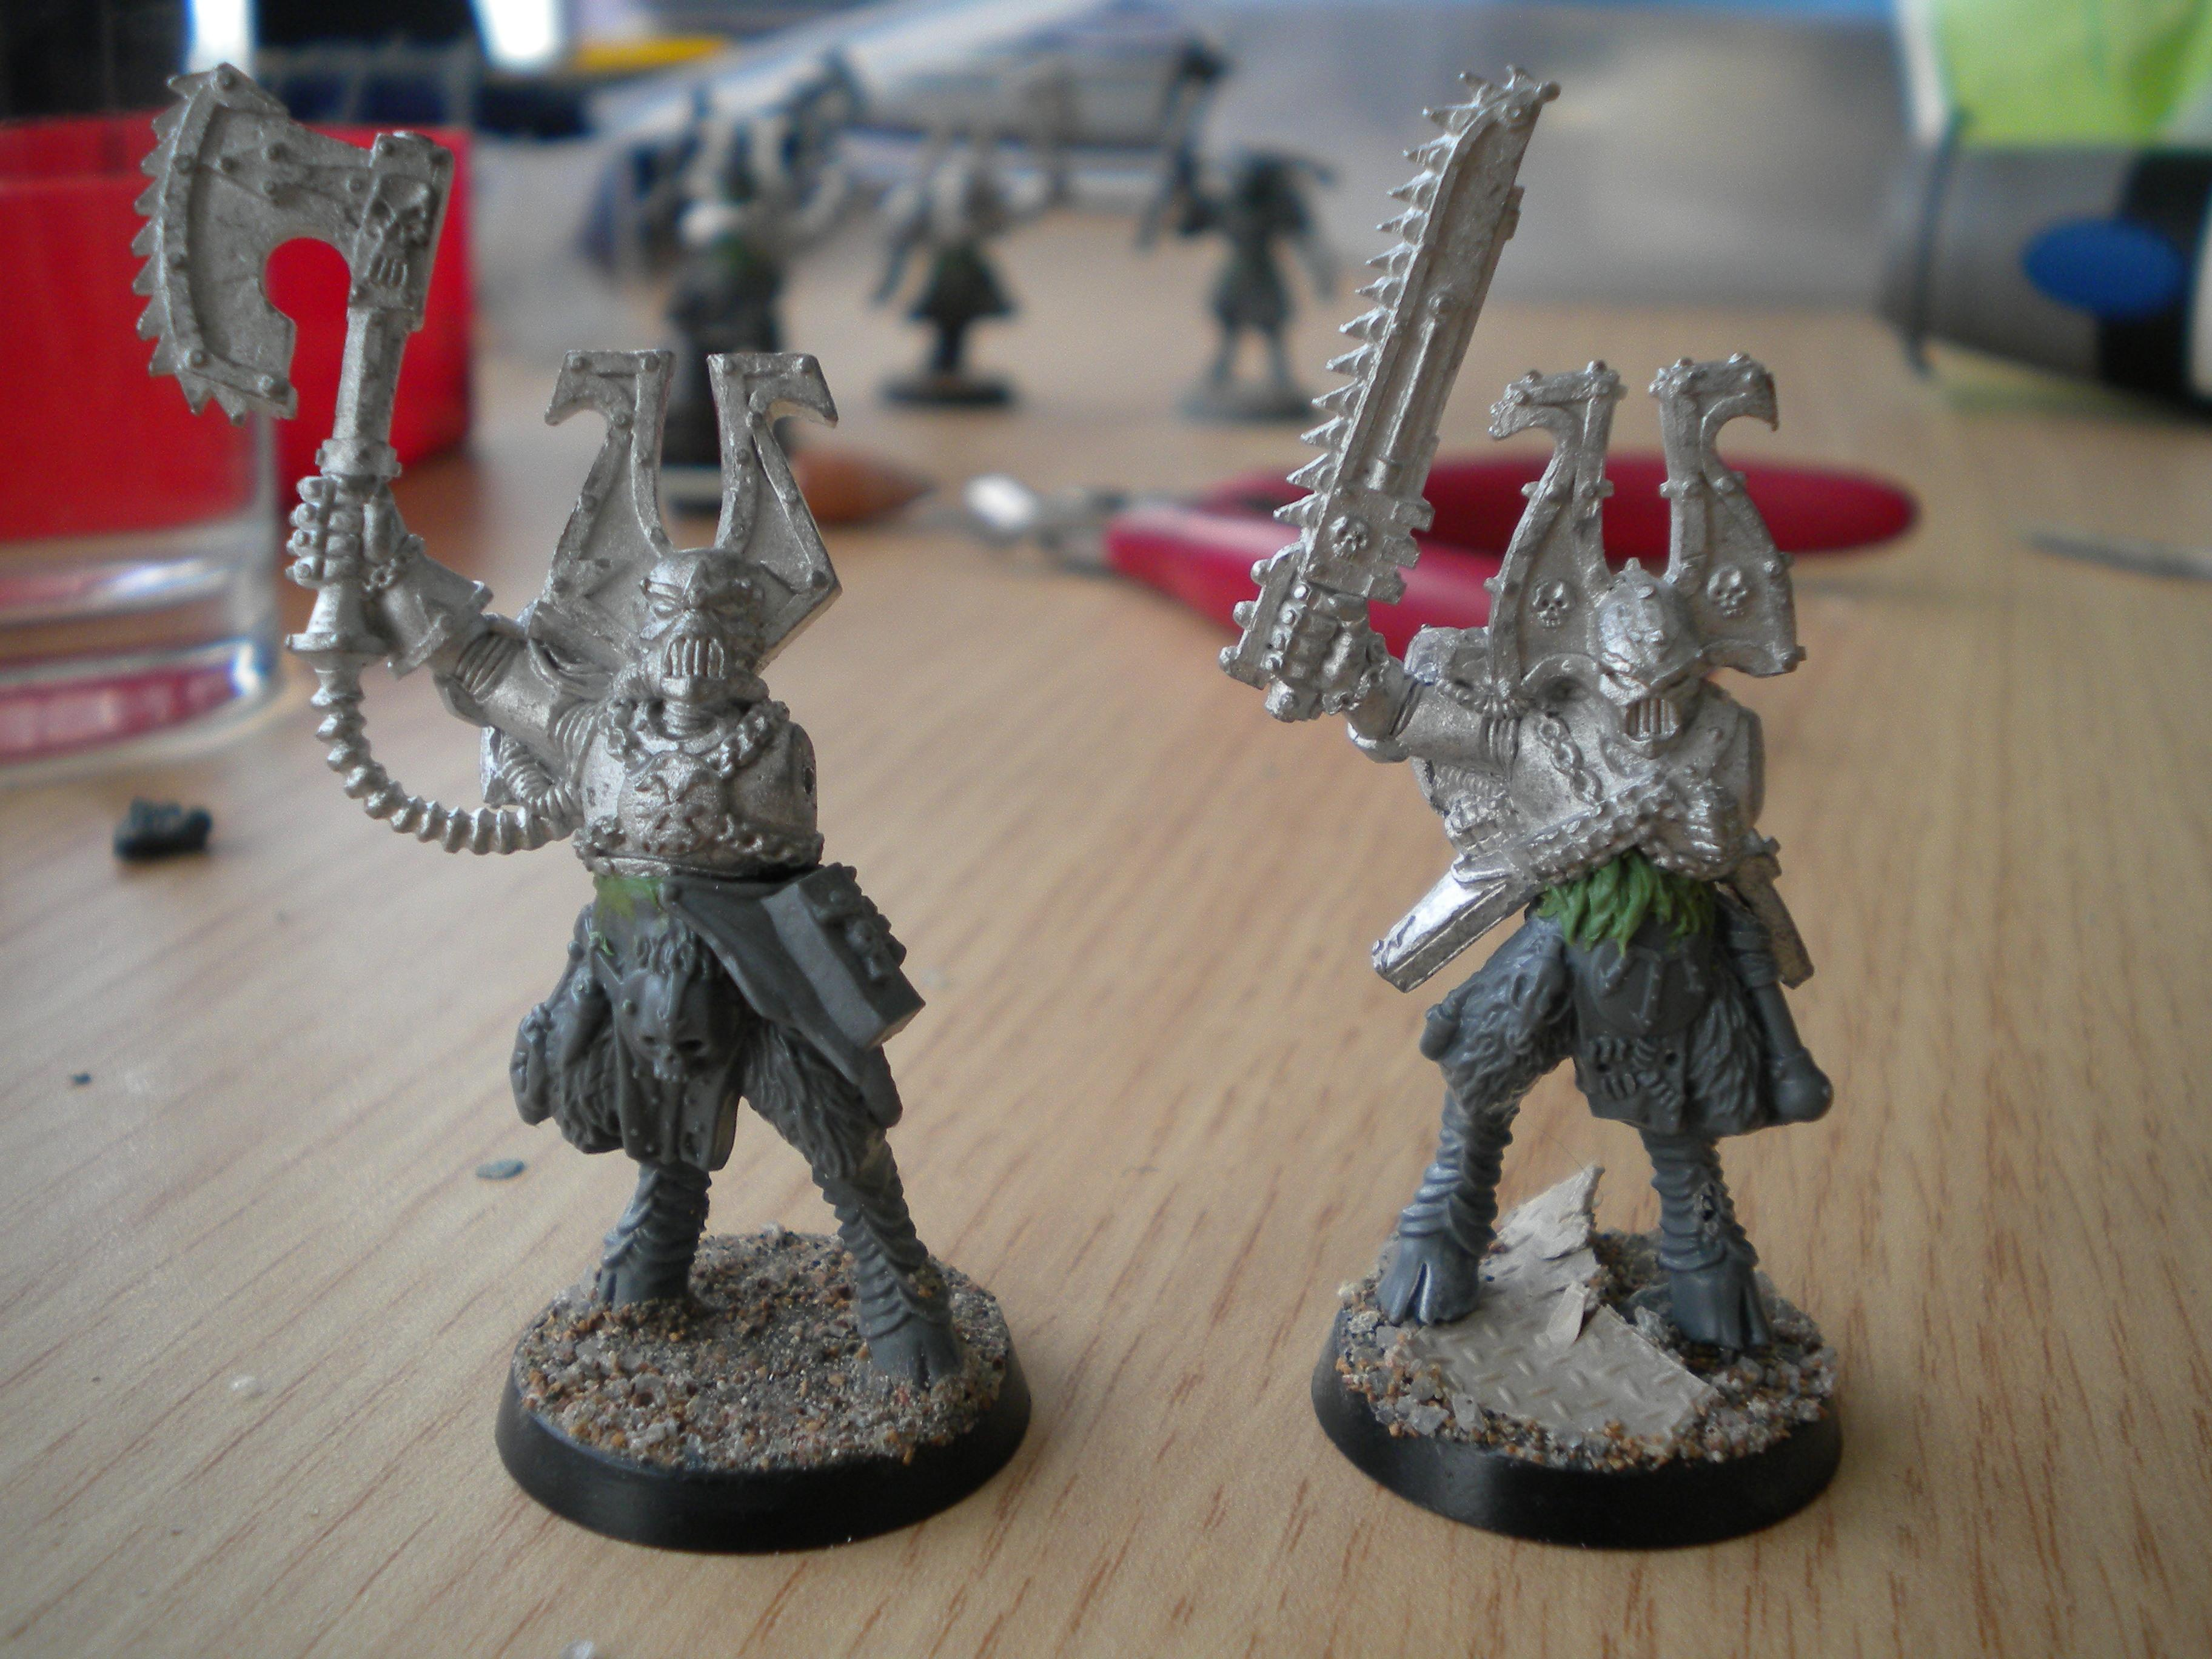 Awesome, Berserkers, Chaos, Chaos Space Marines, Conversion, Cool, Khorne, Space Marines, Warhammer 40,000